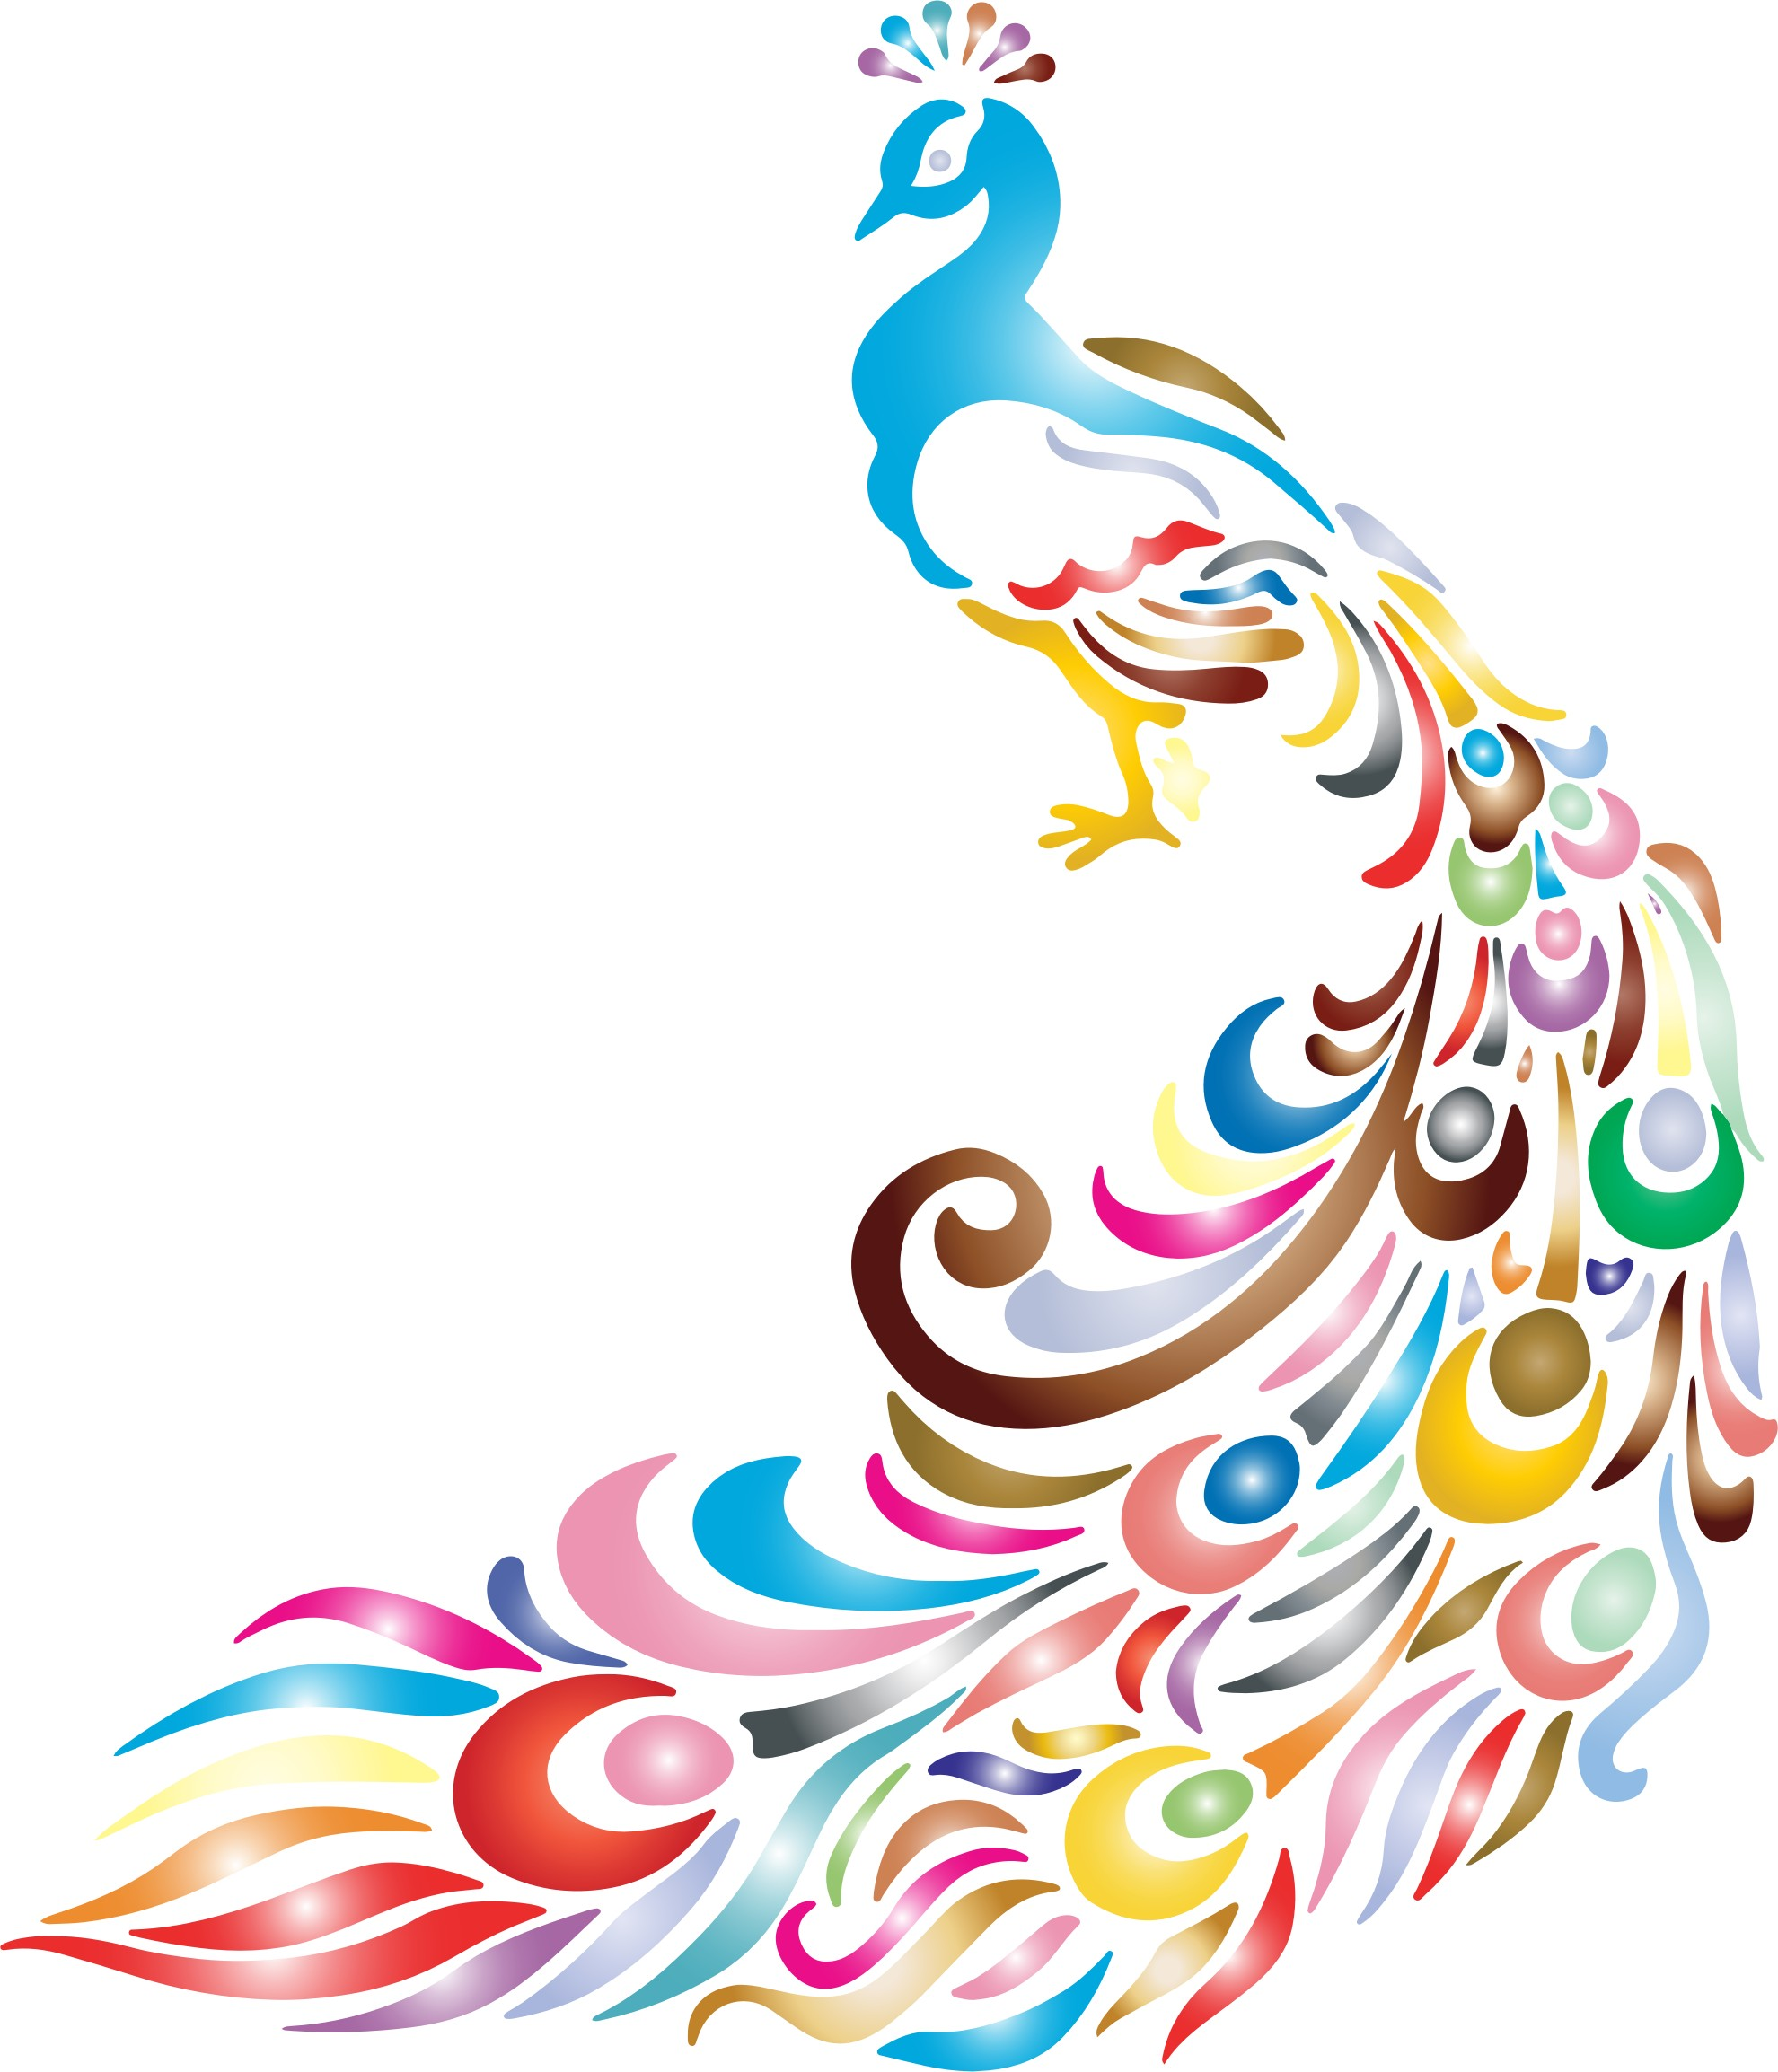 Peacock clipart white background Peacock Images Images Peacock Background